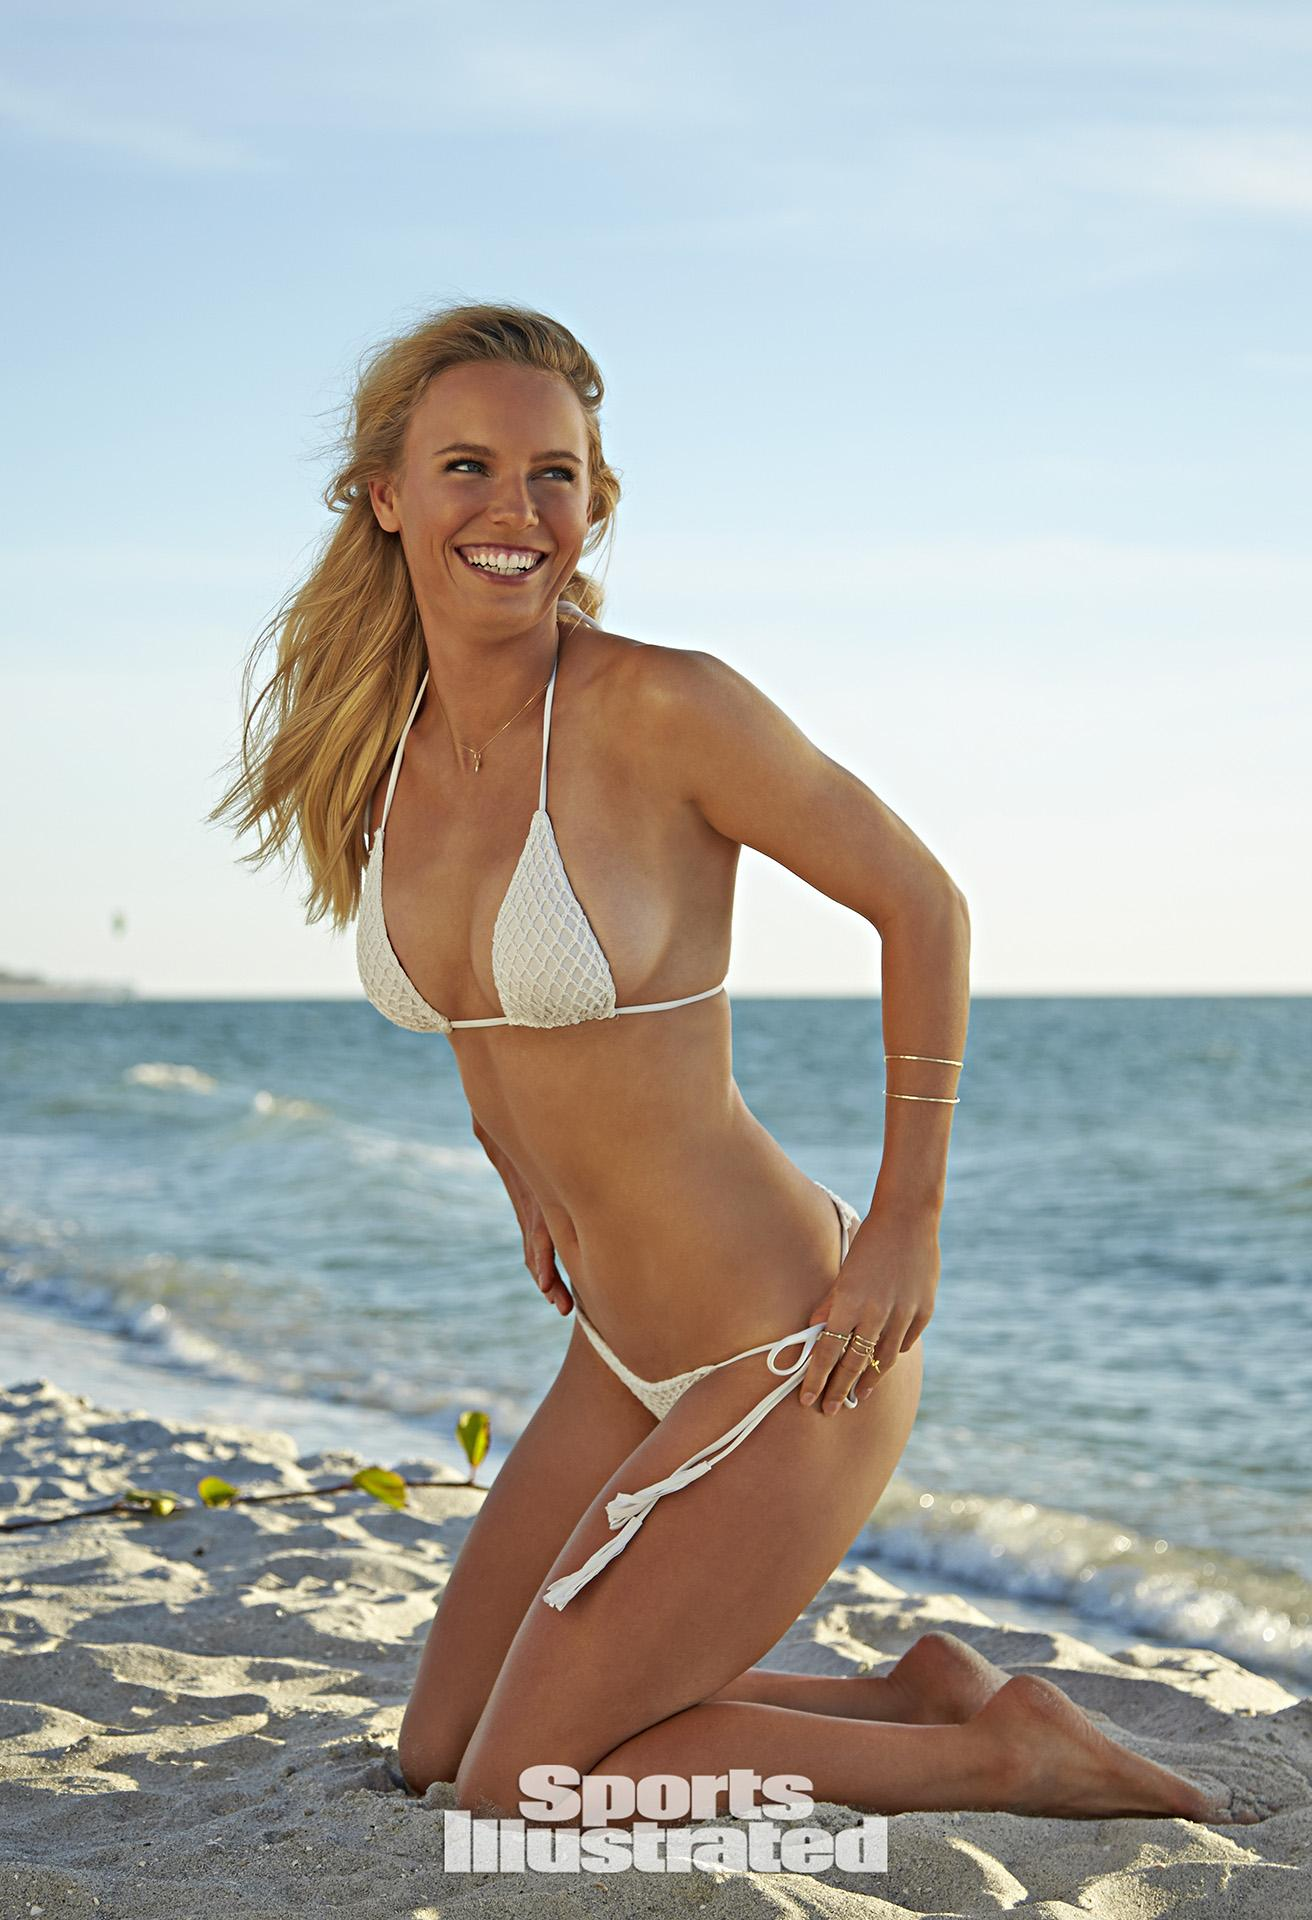 Caroline Wozniacki Swimsuit Photos, Sports Illustrated Swimsuit 2015